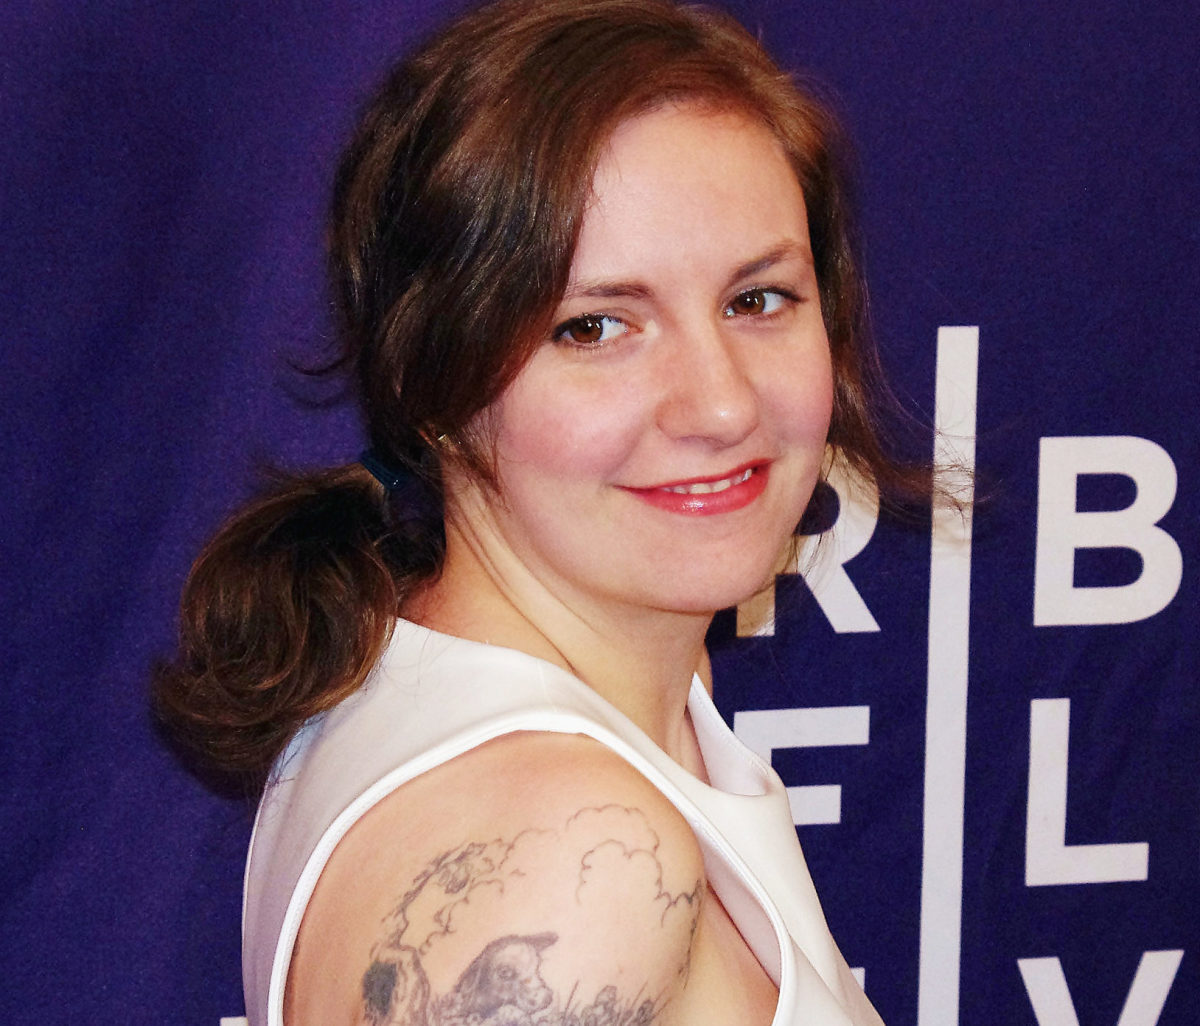 No, Complimenting Lena Dunham's Body Doesn't Make You 'Nice'